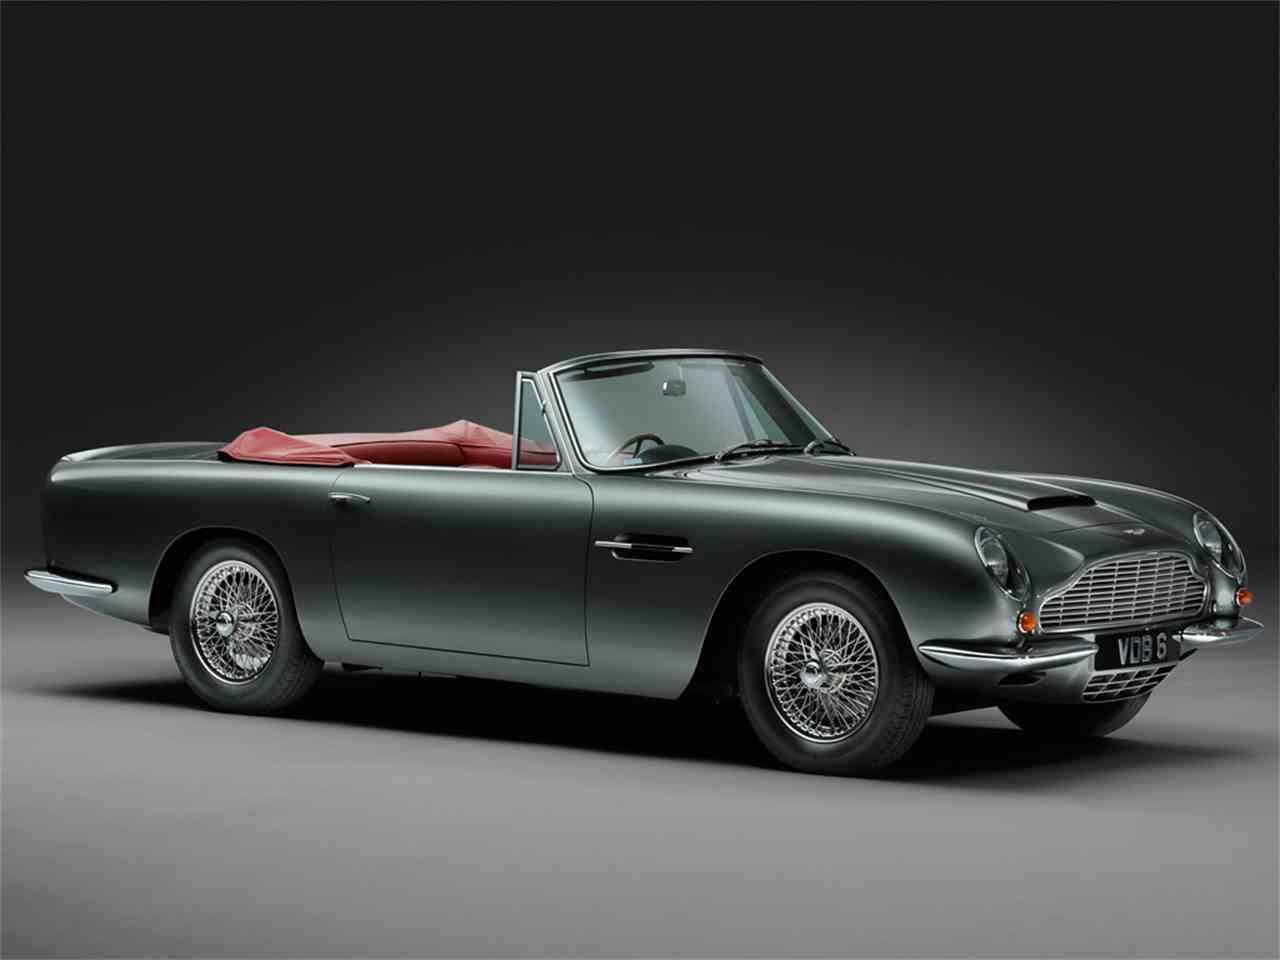 Large Picture of '67 Aston Martin DB6 MKI Vantage Volante located in Maldon, Essex  Auction Vehicle Offered by JD Classics LTD - IVCB